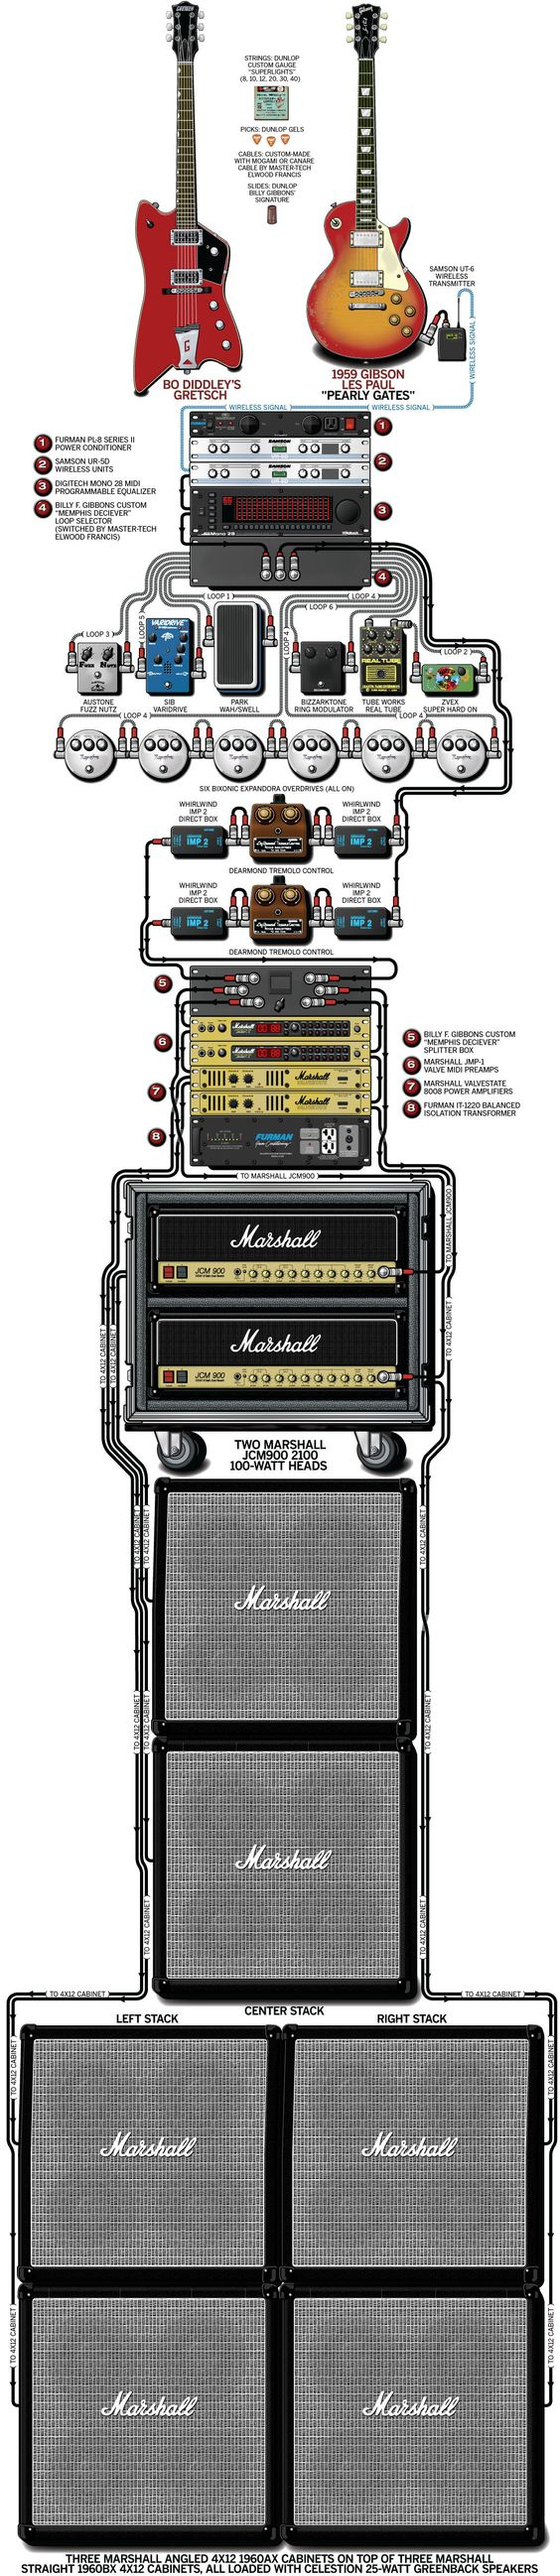 Billy Gibbons\' stage rig. | Guitar | Pinterest | Billy gibbons, Rigs ...